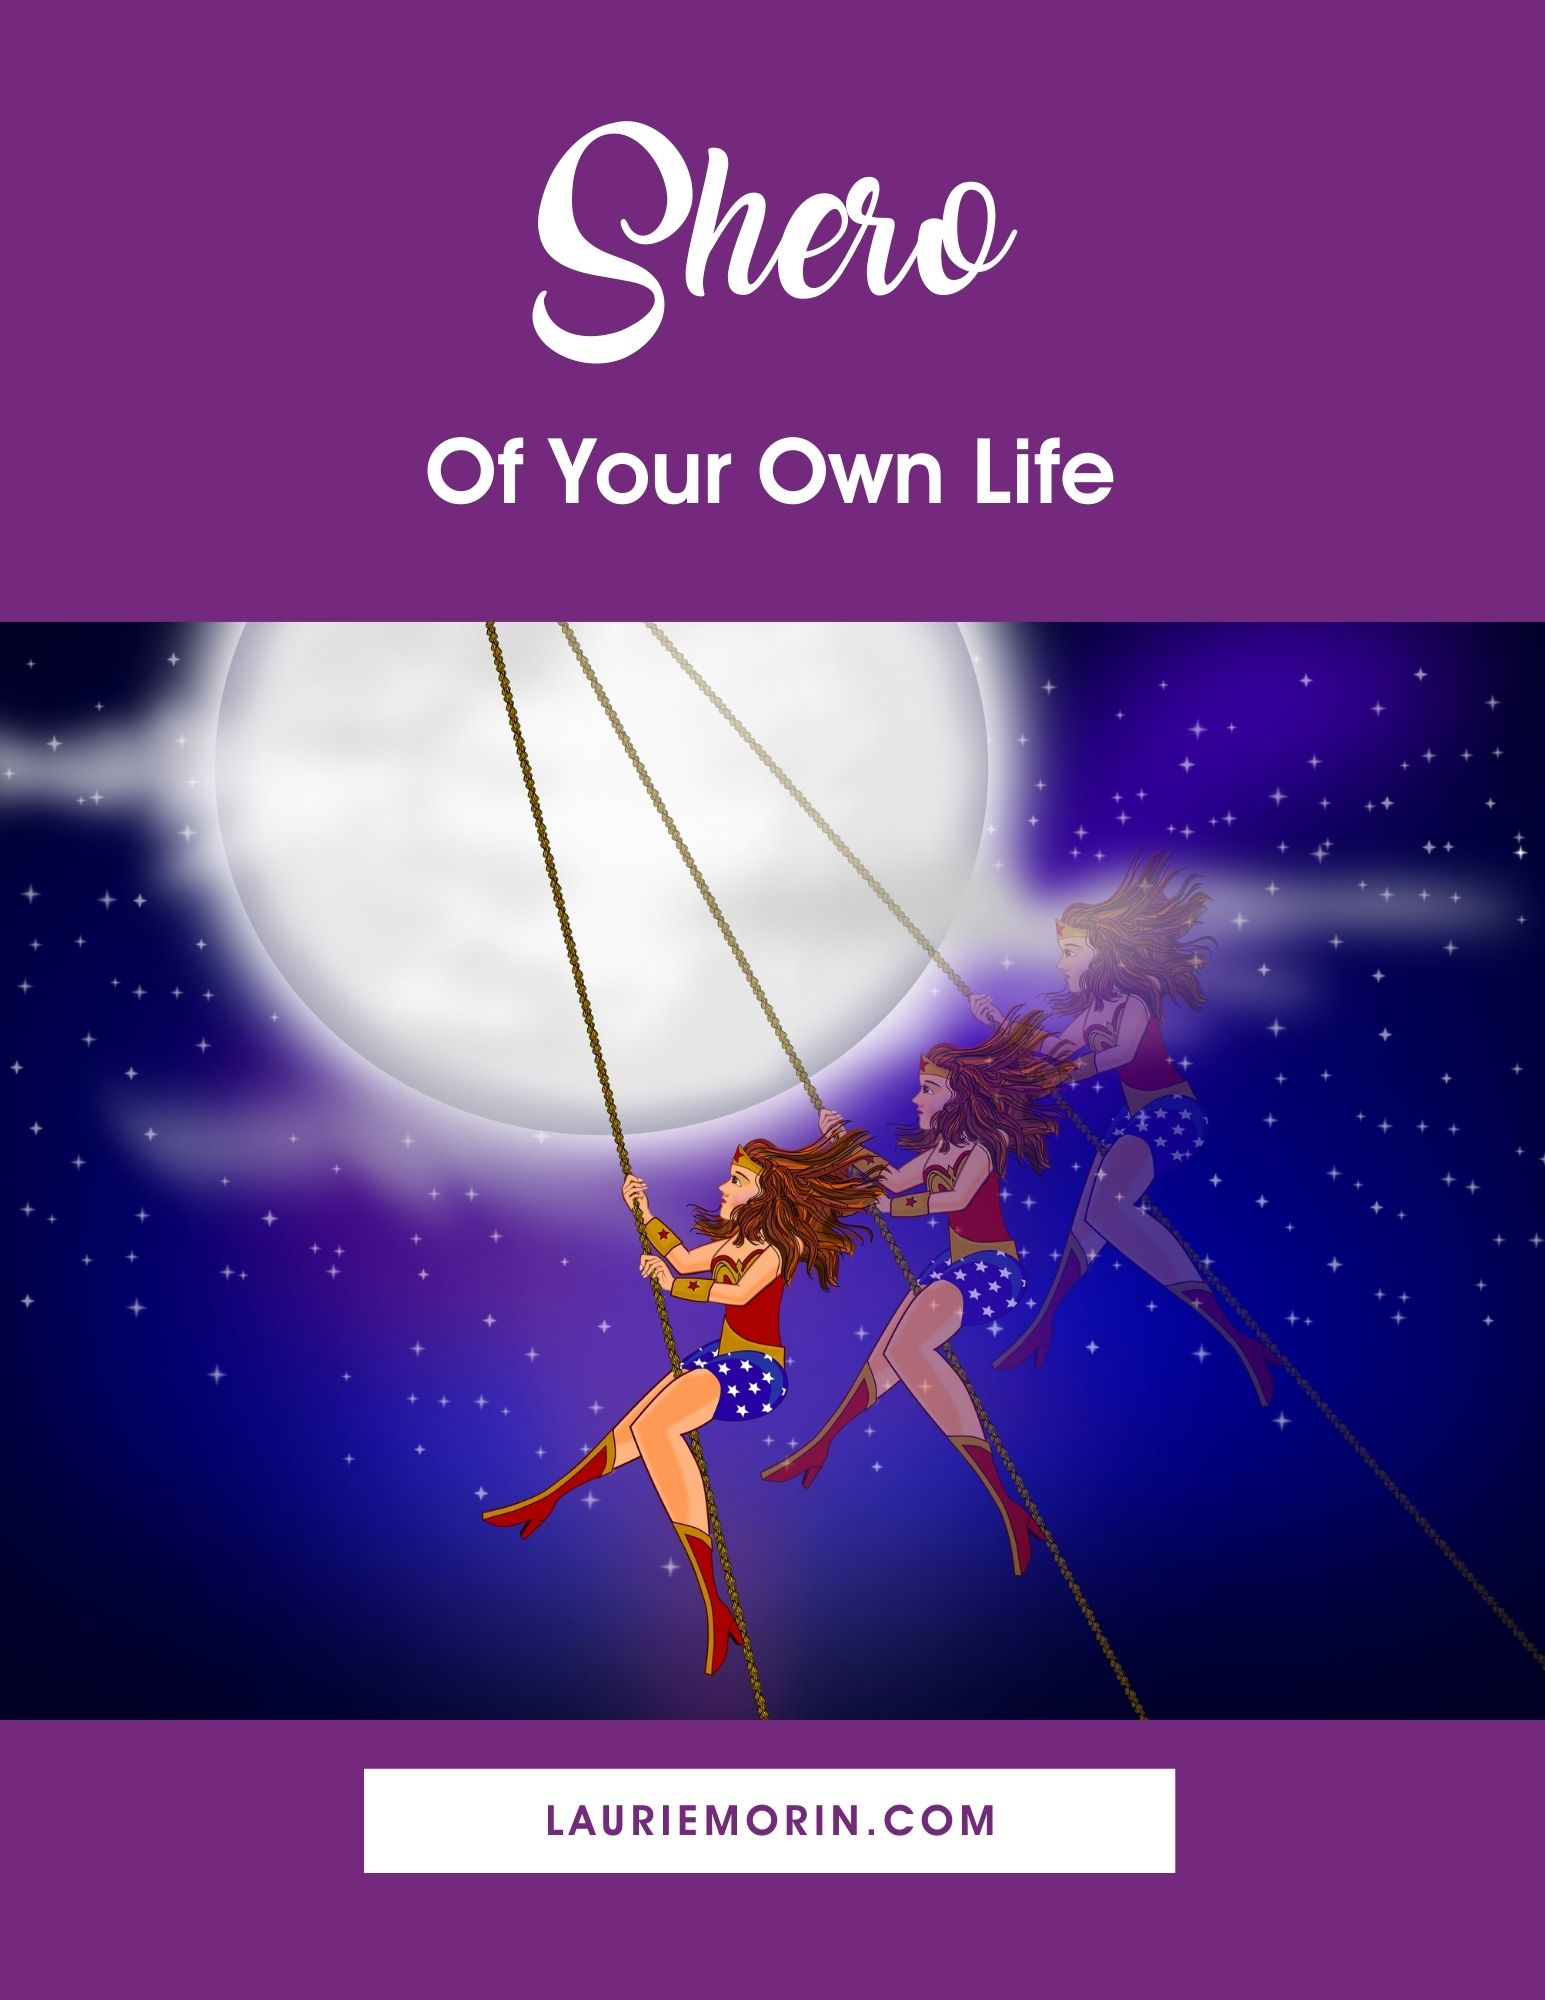 Shero of Your Own Life